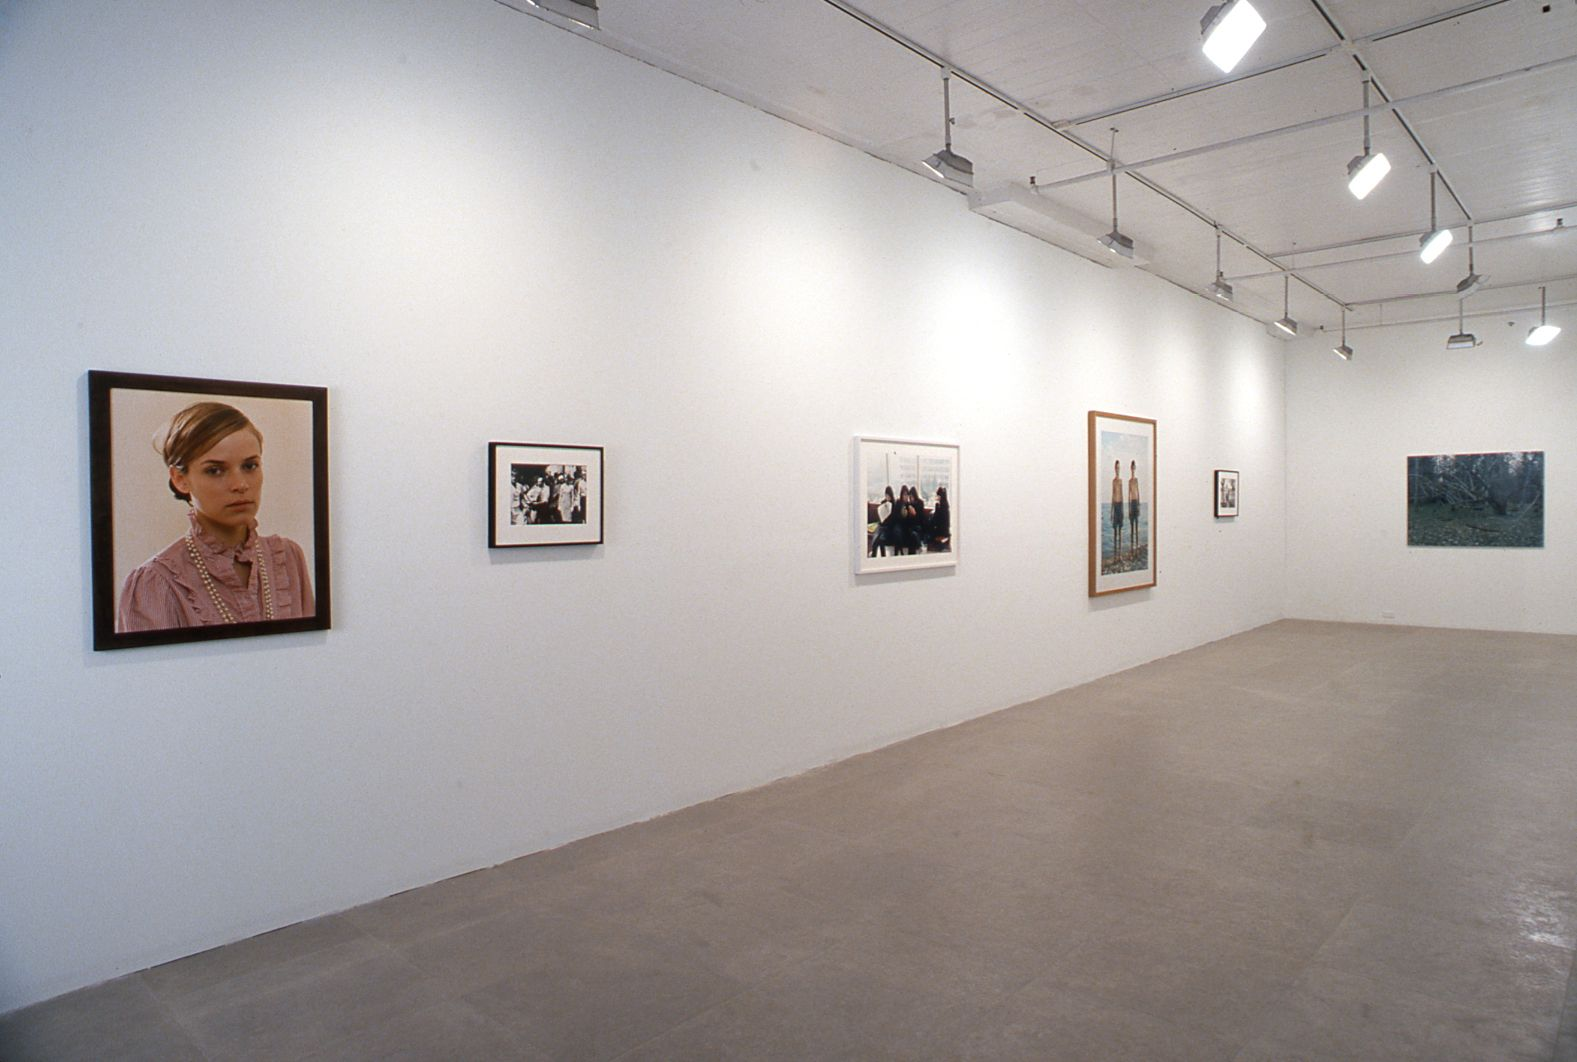 Installation view, Pictures Greene Naftali, New York, 2002